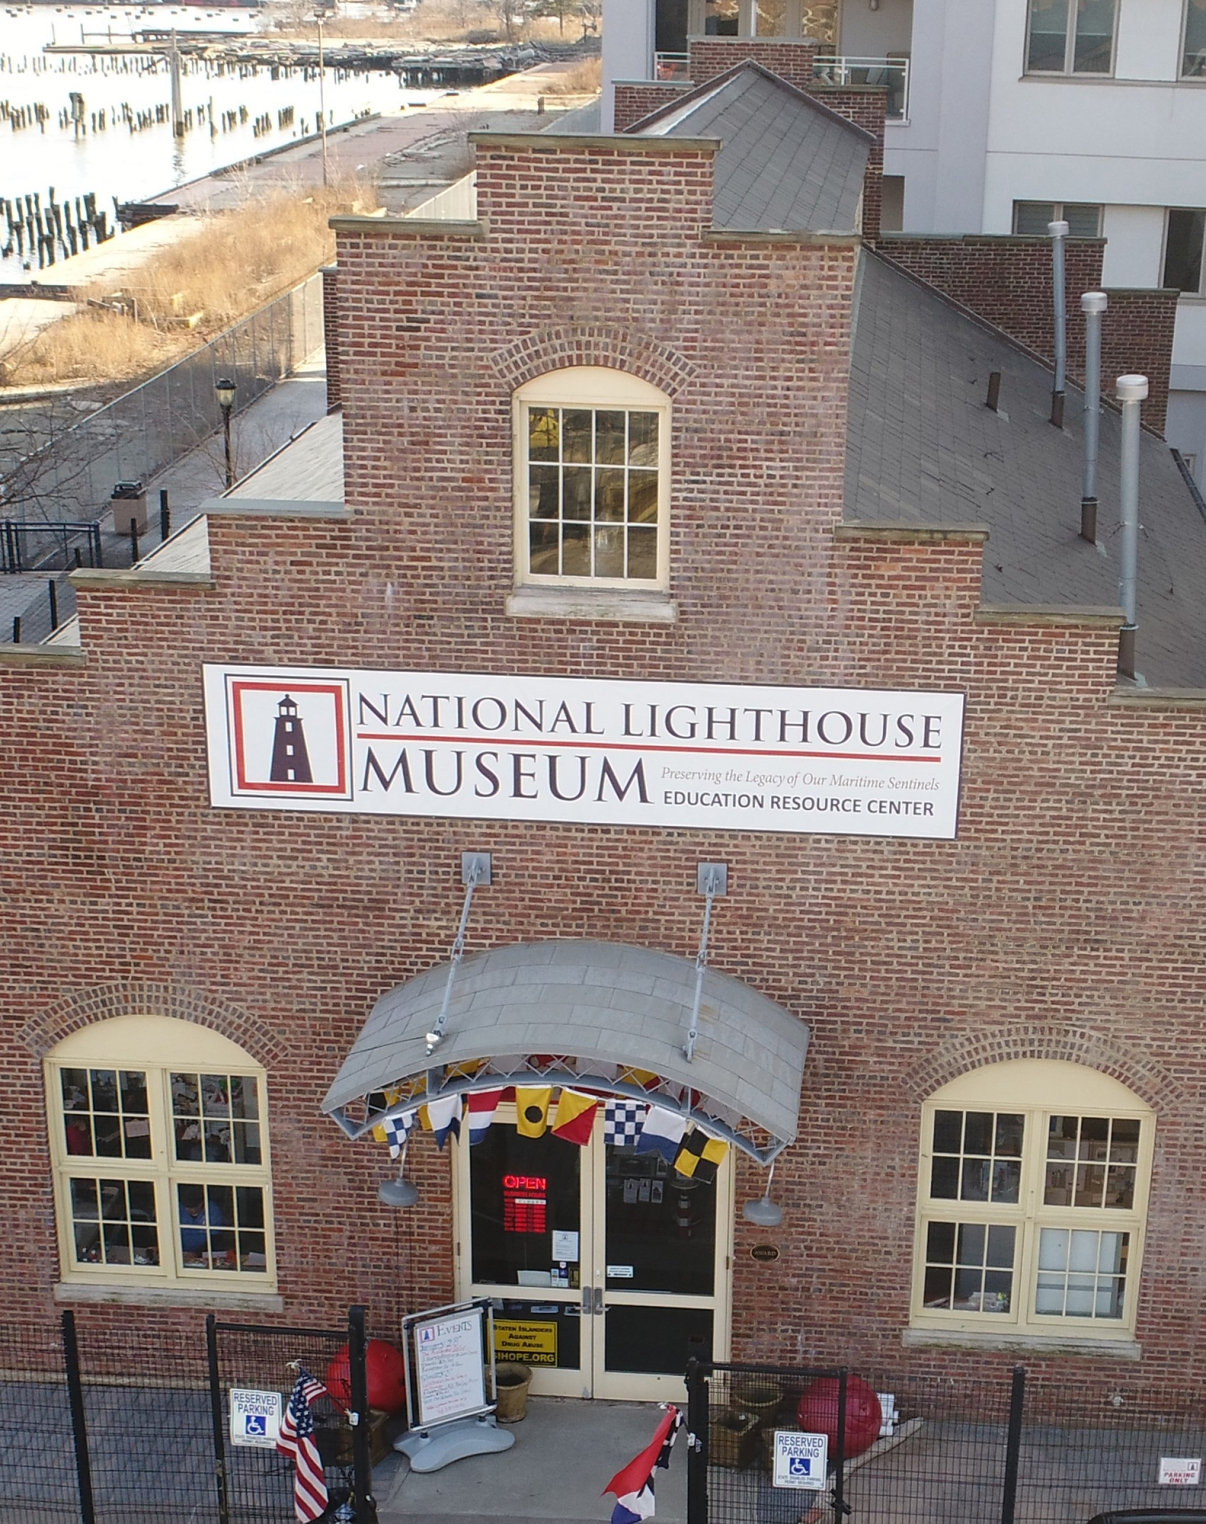 National Lighthouse Museum. Photo courtesy of National Lighthouse Museum.